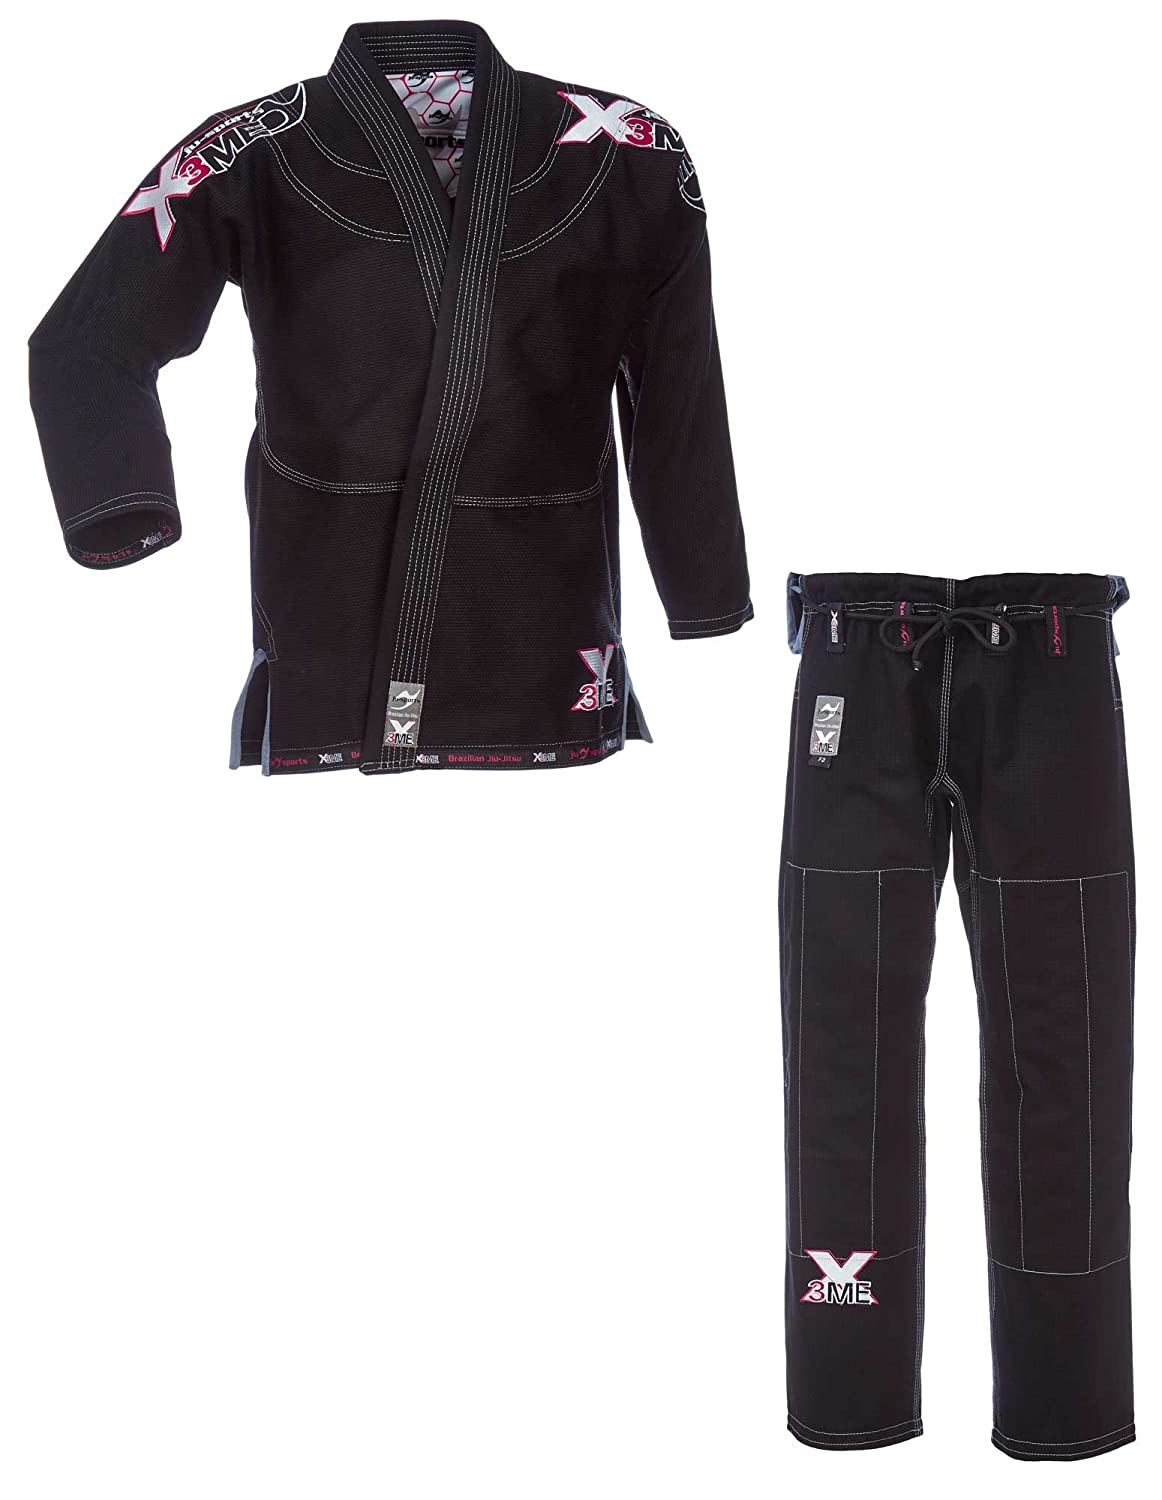 Ju-Sports Amazona BJJ-Gi EXTREME 2.0 black/pink (F4 (180))